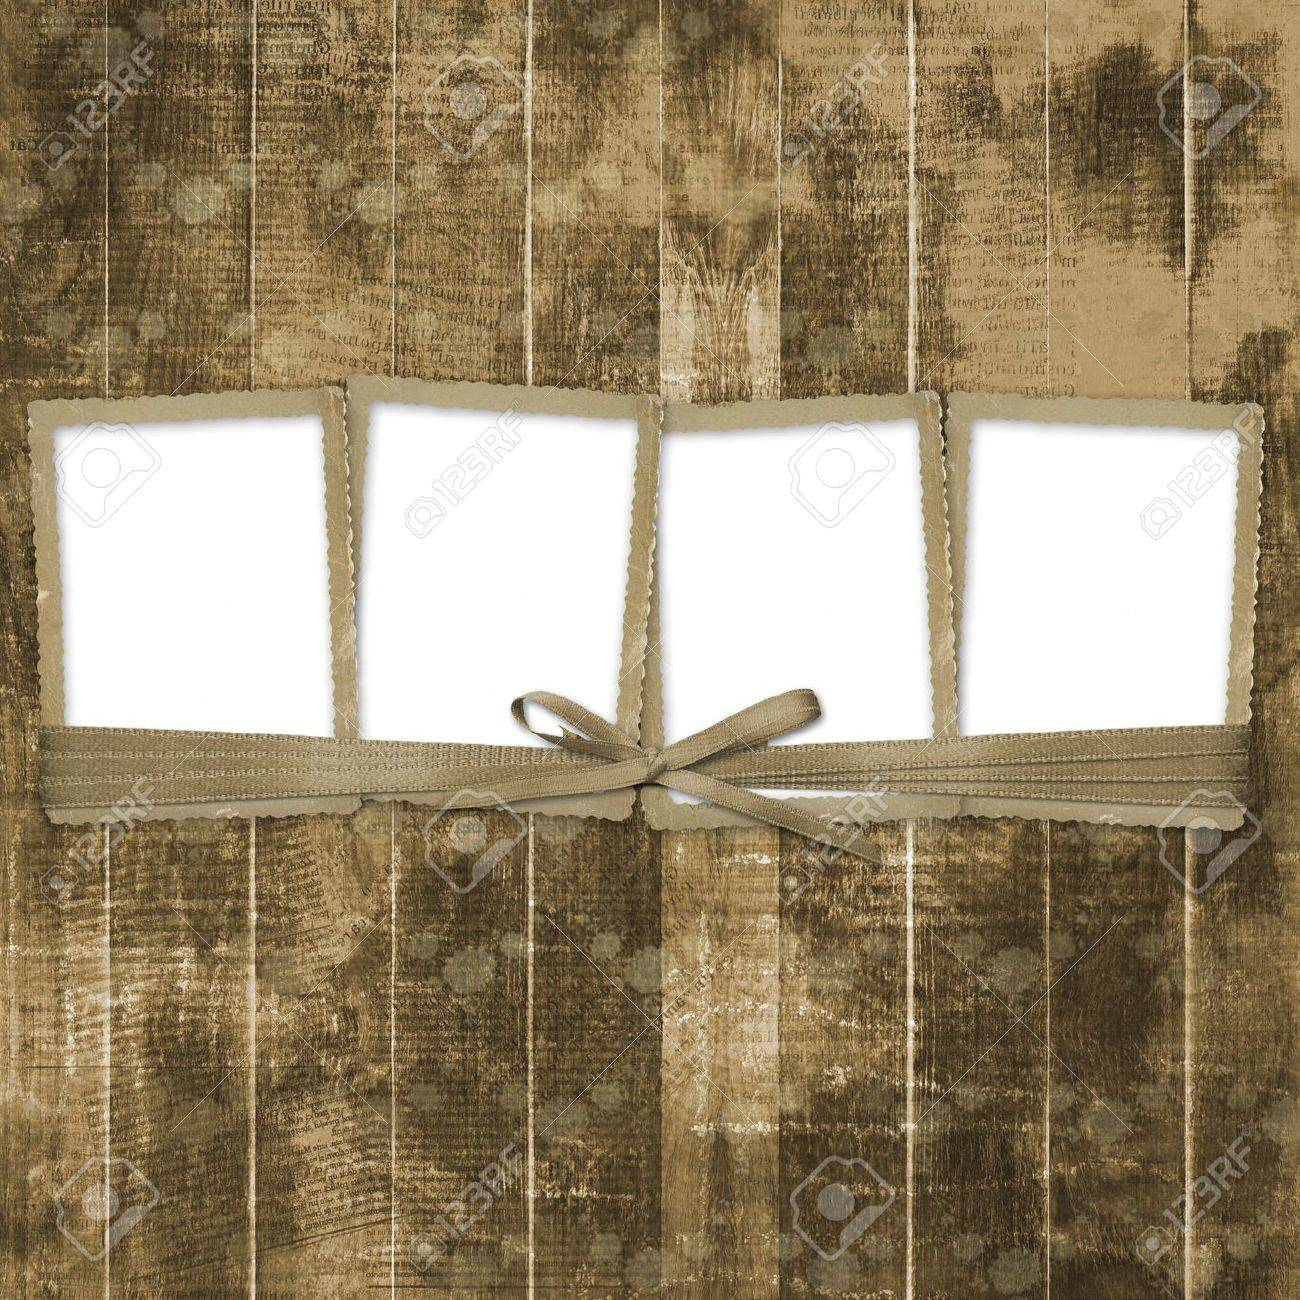 Four Frames With Ribbons And Bow To Old Photos Stock Photo, Picture ...